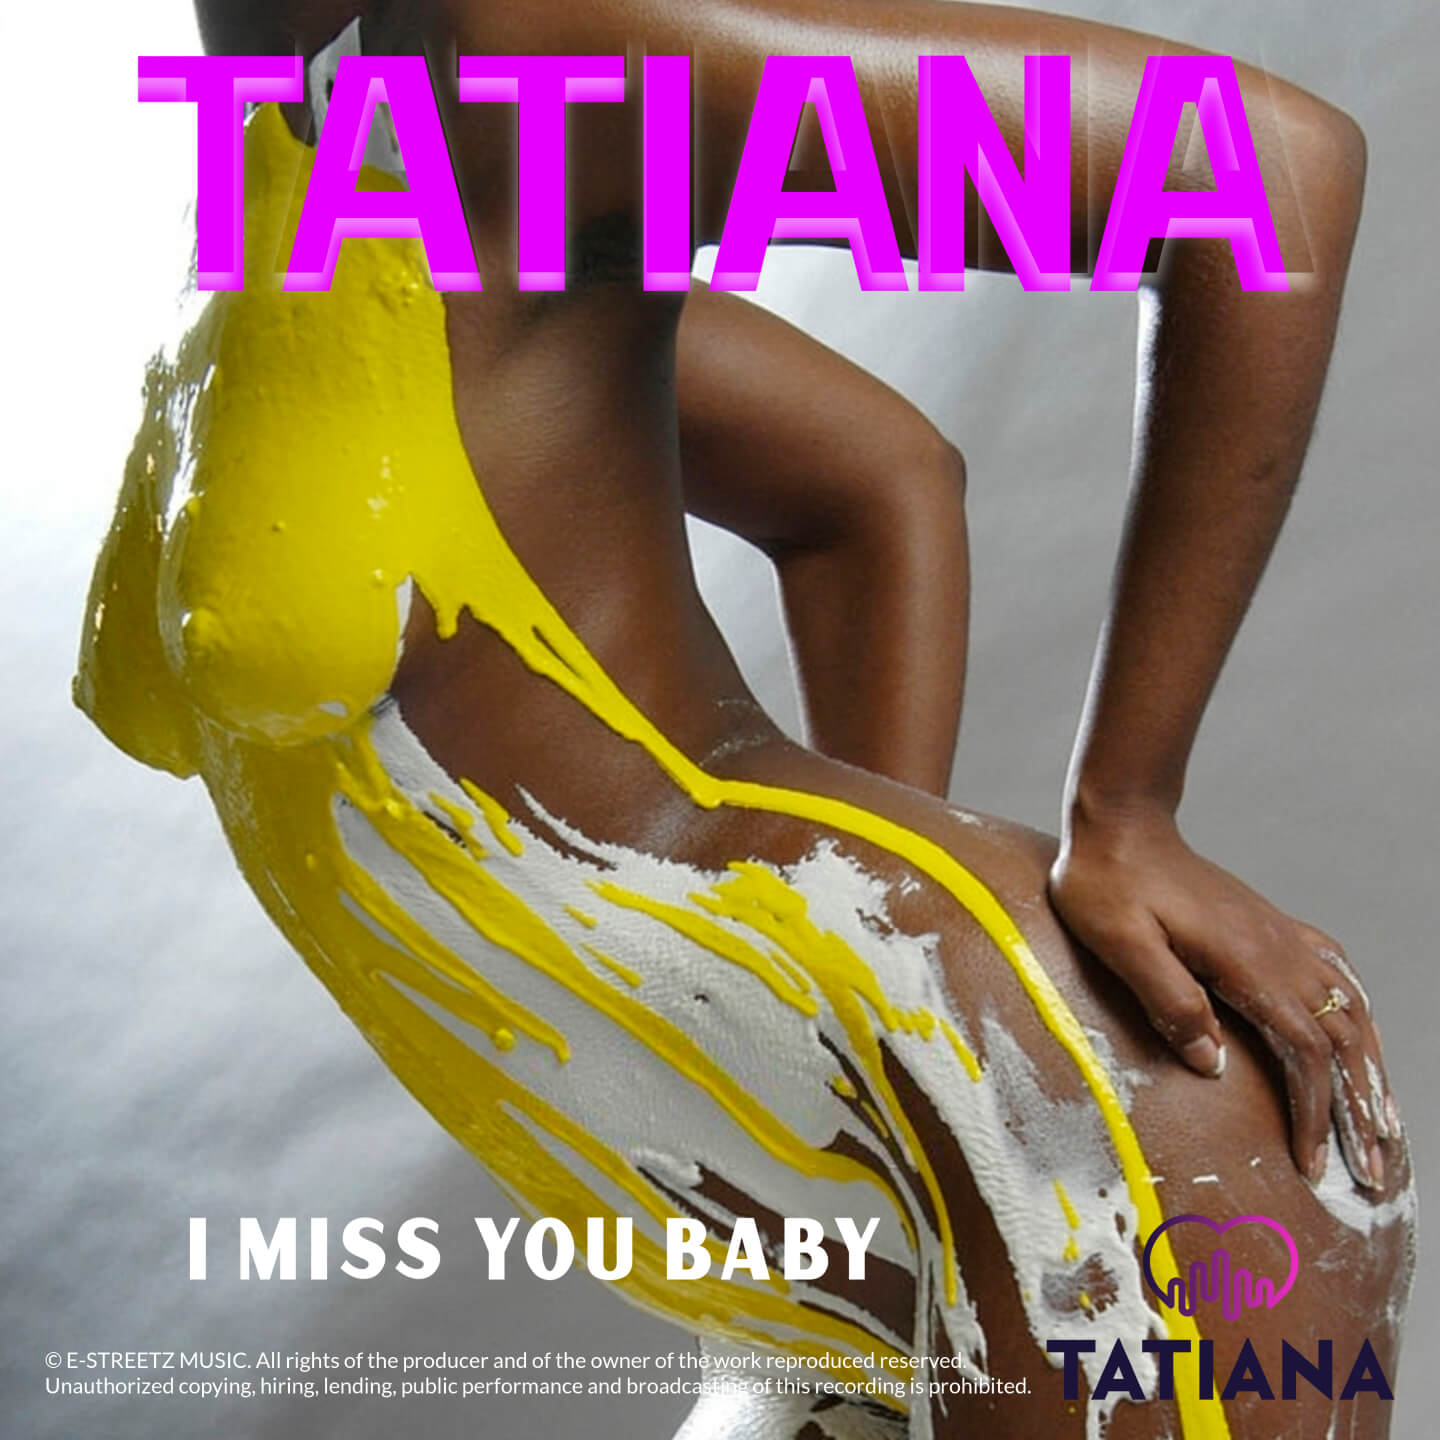 tatiana I miss you baby